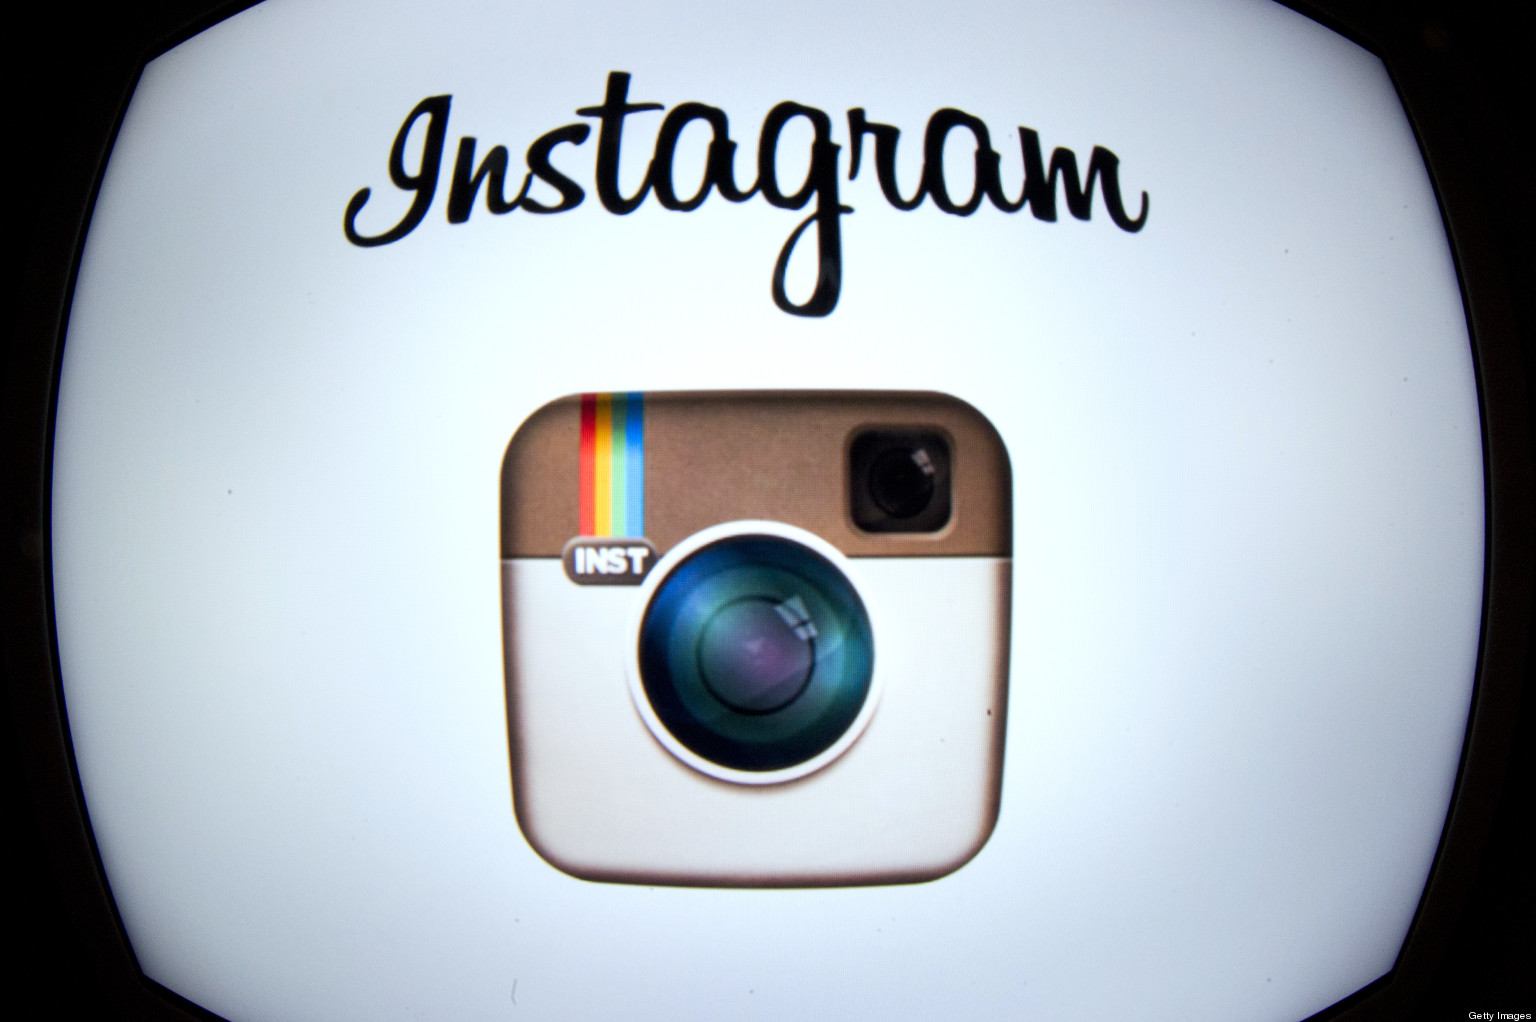 The Instagram logo is displayed on a tablet on December 20, 2012 in Paris. Instagram backed down on December 18, 2012 from a planned policy change that appeared to clear the way for the mobile photo sharing service to sell pictures without compensation, after users cried foul. Changes to the Instagram privacy policy and terms of service set to take effect January 16 had included wording that appeared to allow people's pictures to be used by advertisers at Instagram or Facebook worldwide, royalty-free. AFP PHOTO / LIONEL BONAVENTURE (Photo credit should read LIONEL BONAVENTURE/AFP/Getty Images)